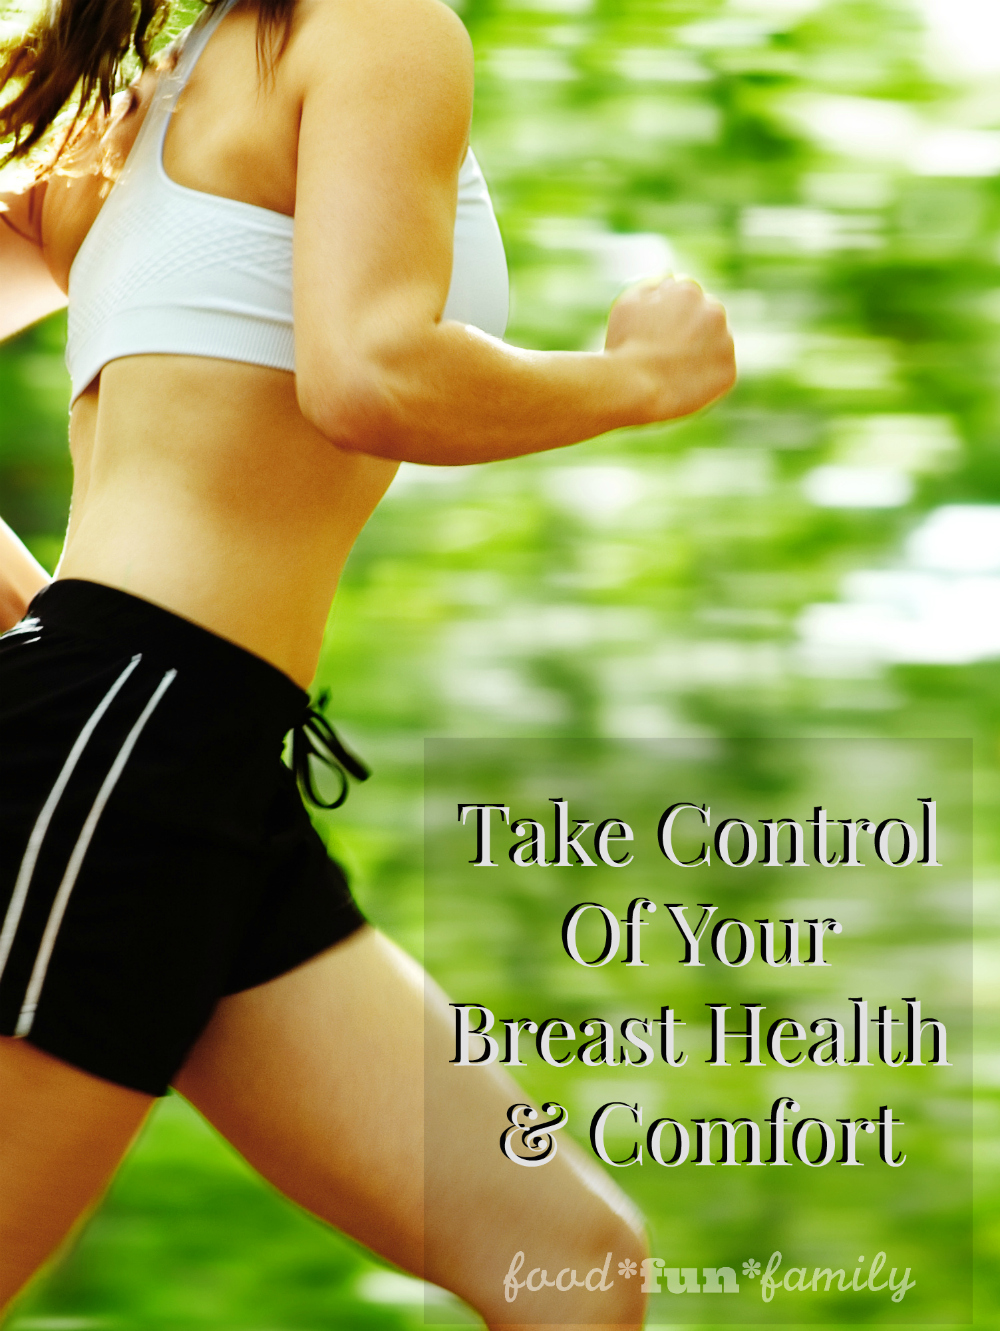 Take Control Of Your Breast Health & Comfort at Food Fun Family